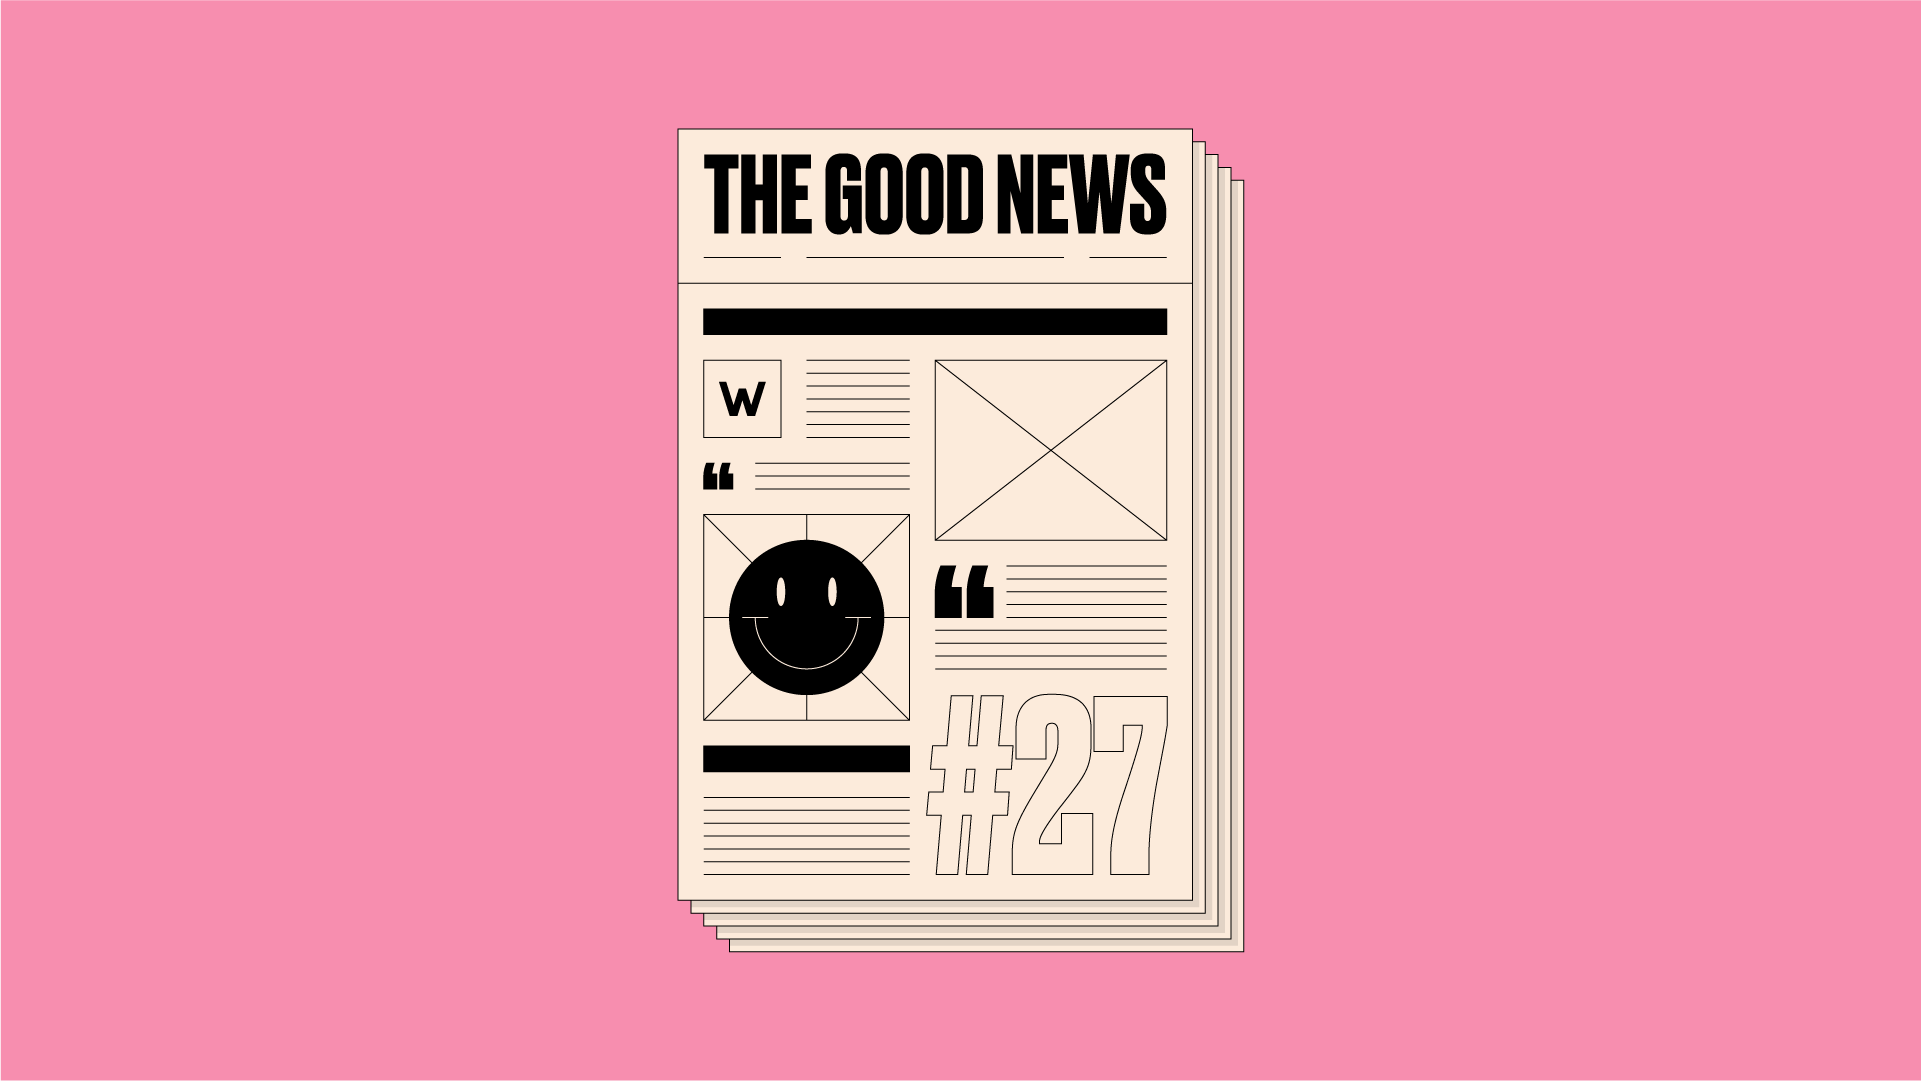 Illustration of newspaper front page with 'The Good News #27' written on it, on a pink background.